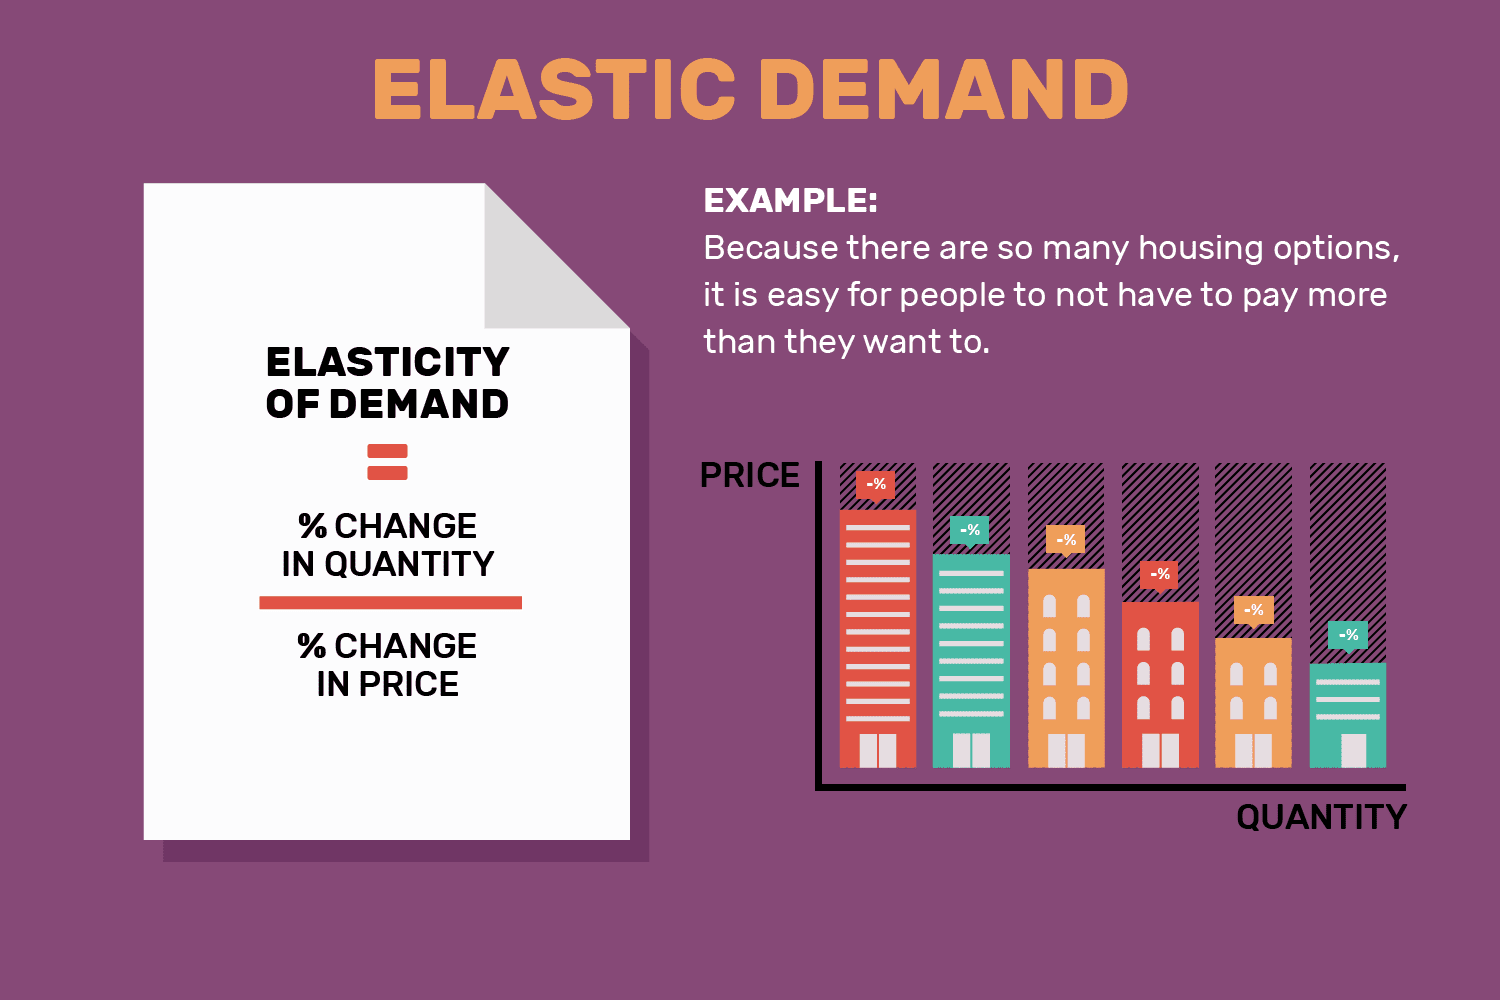 Elasticity Elasticity Of Demand Definition Economics